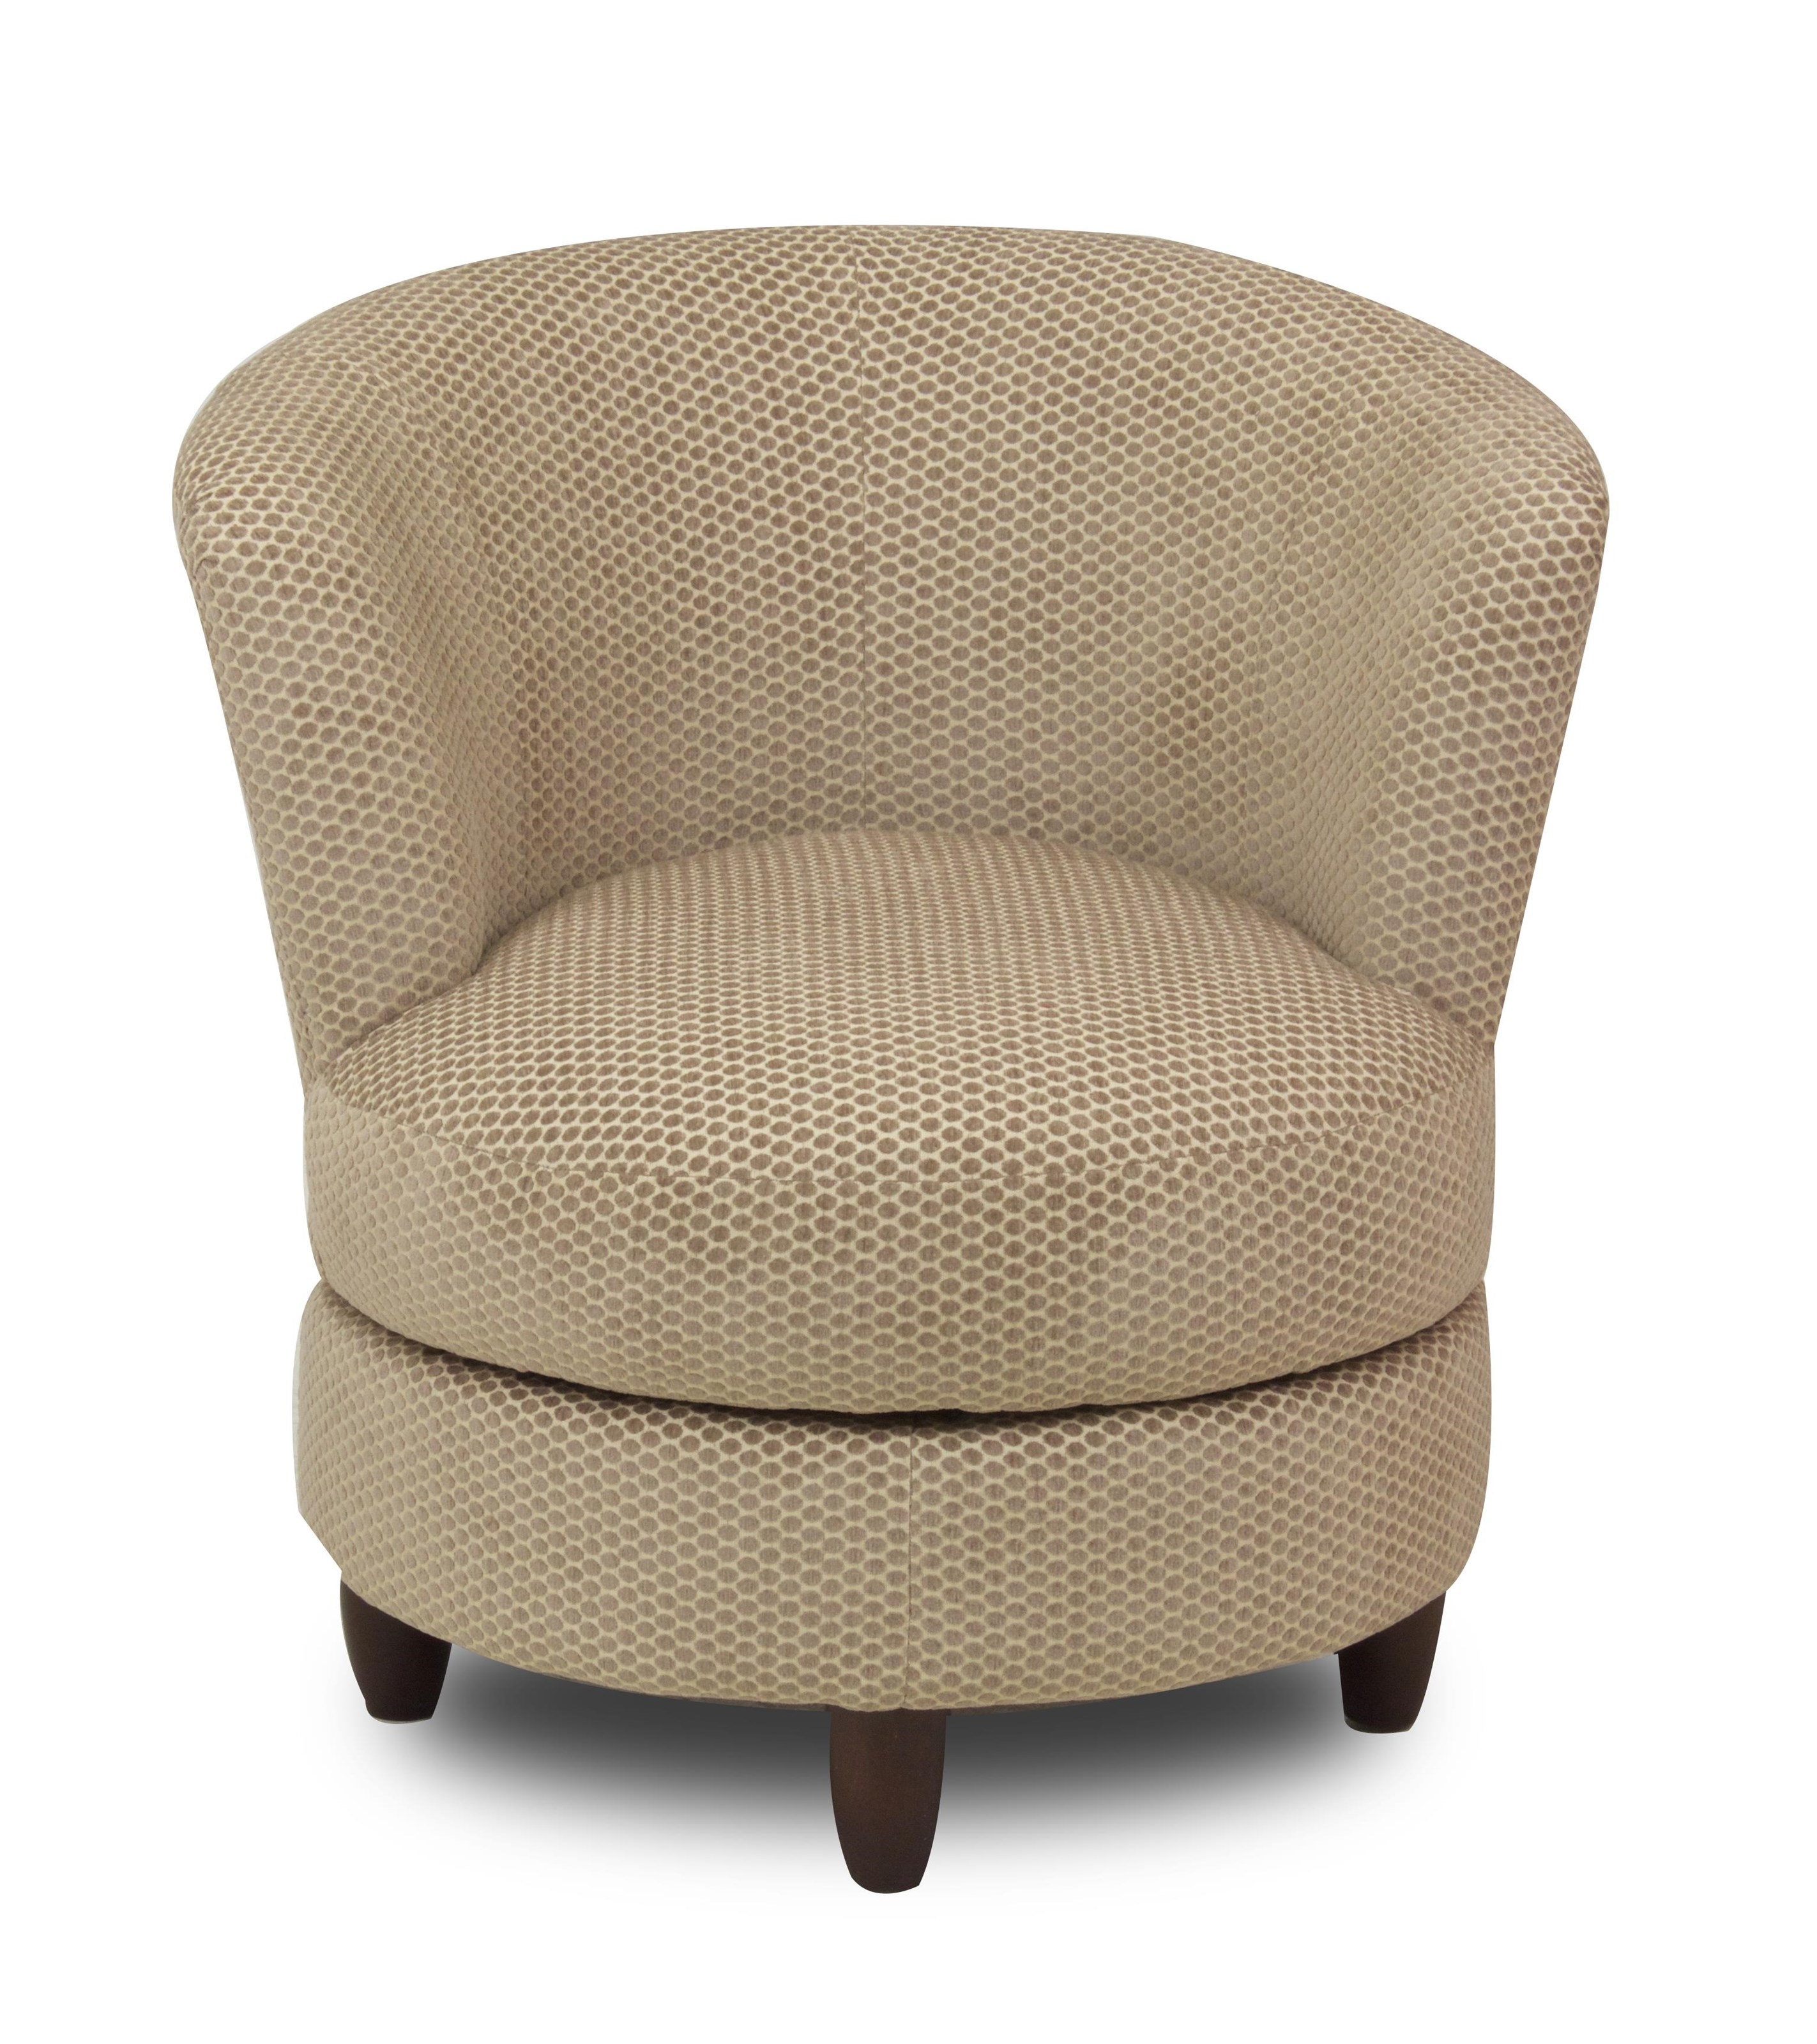 Chairs Swivel Barrel Palmona Swivel Barrel Chair With Wood Legs Ruby Gordon Home Upholstered Chairs